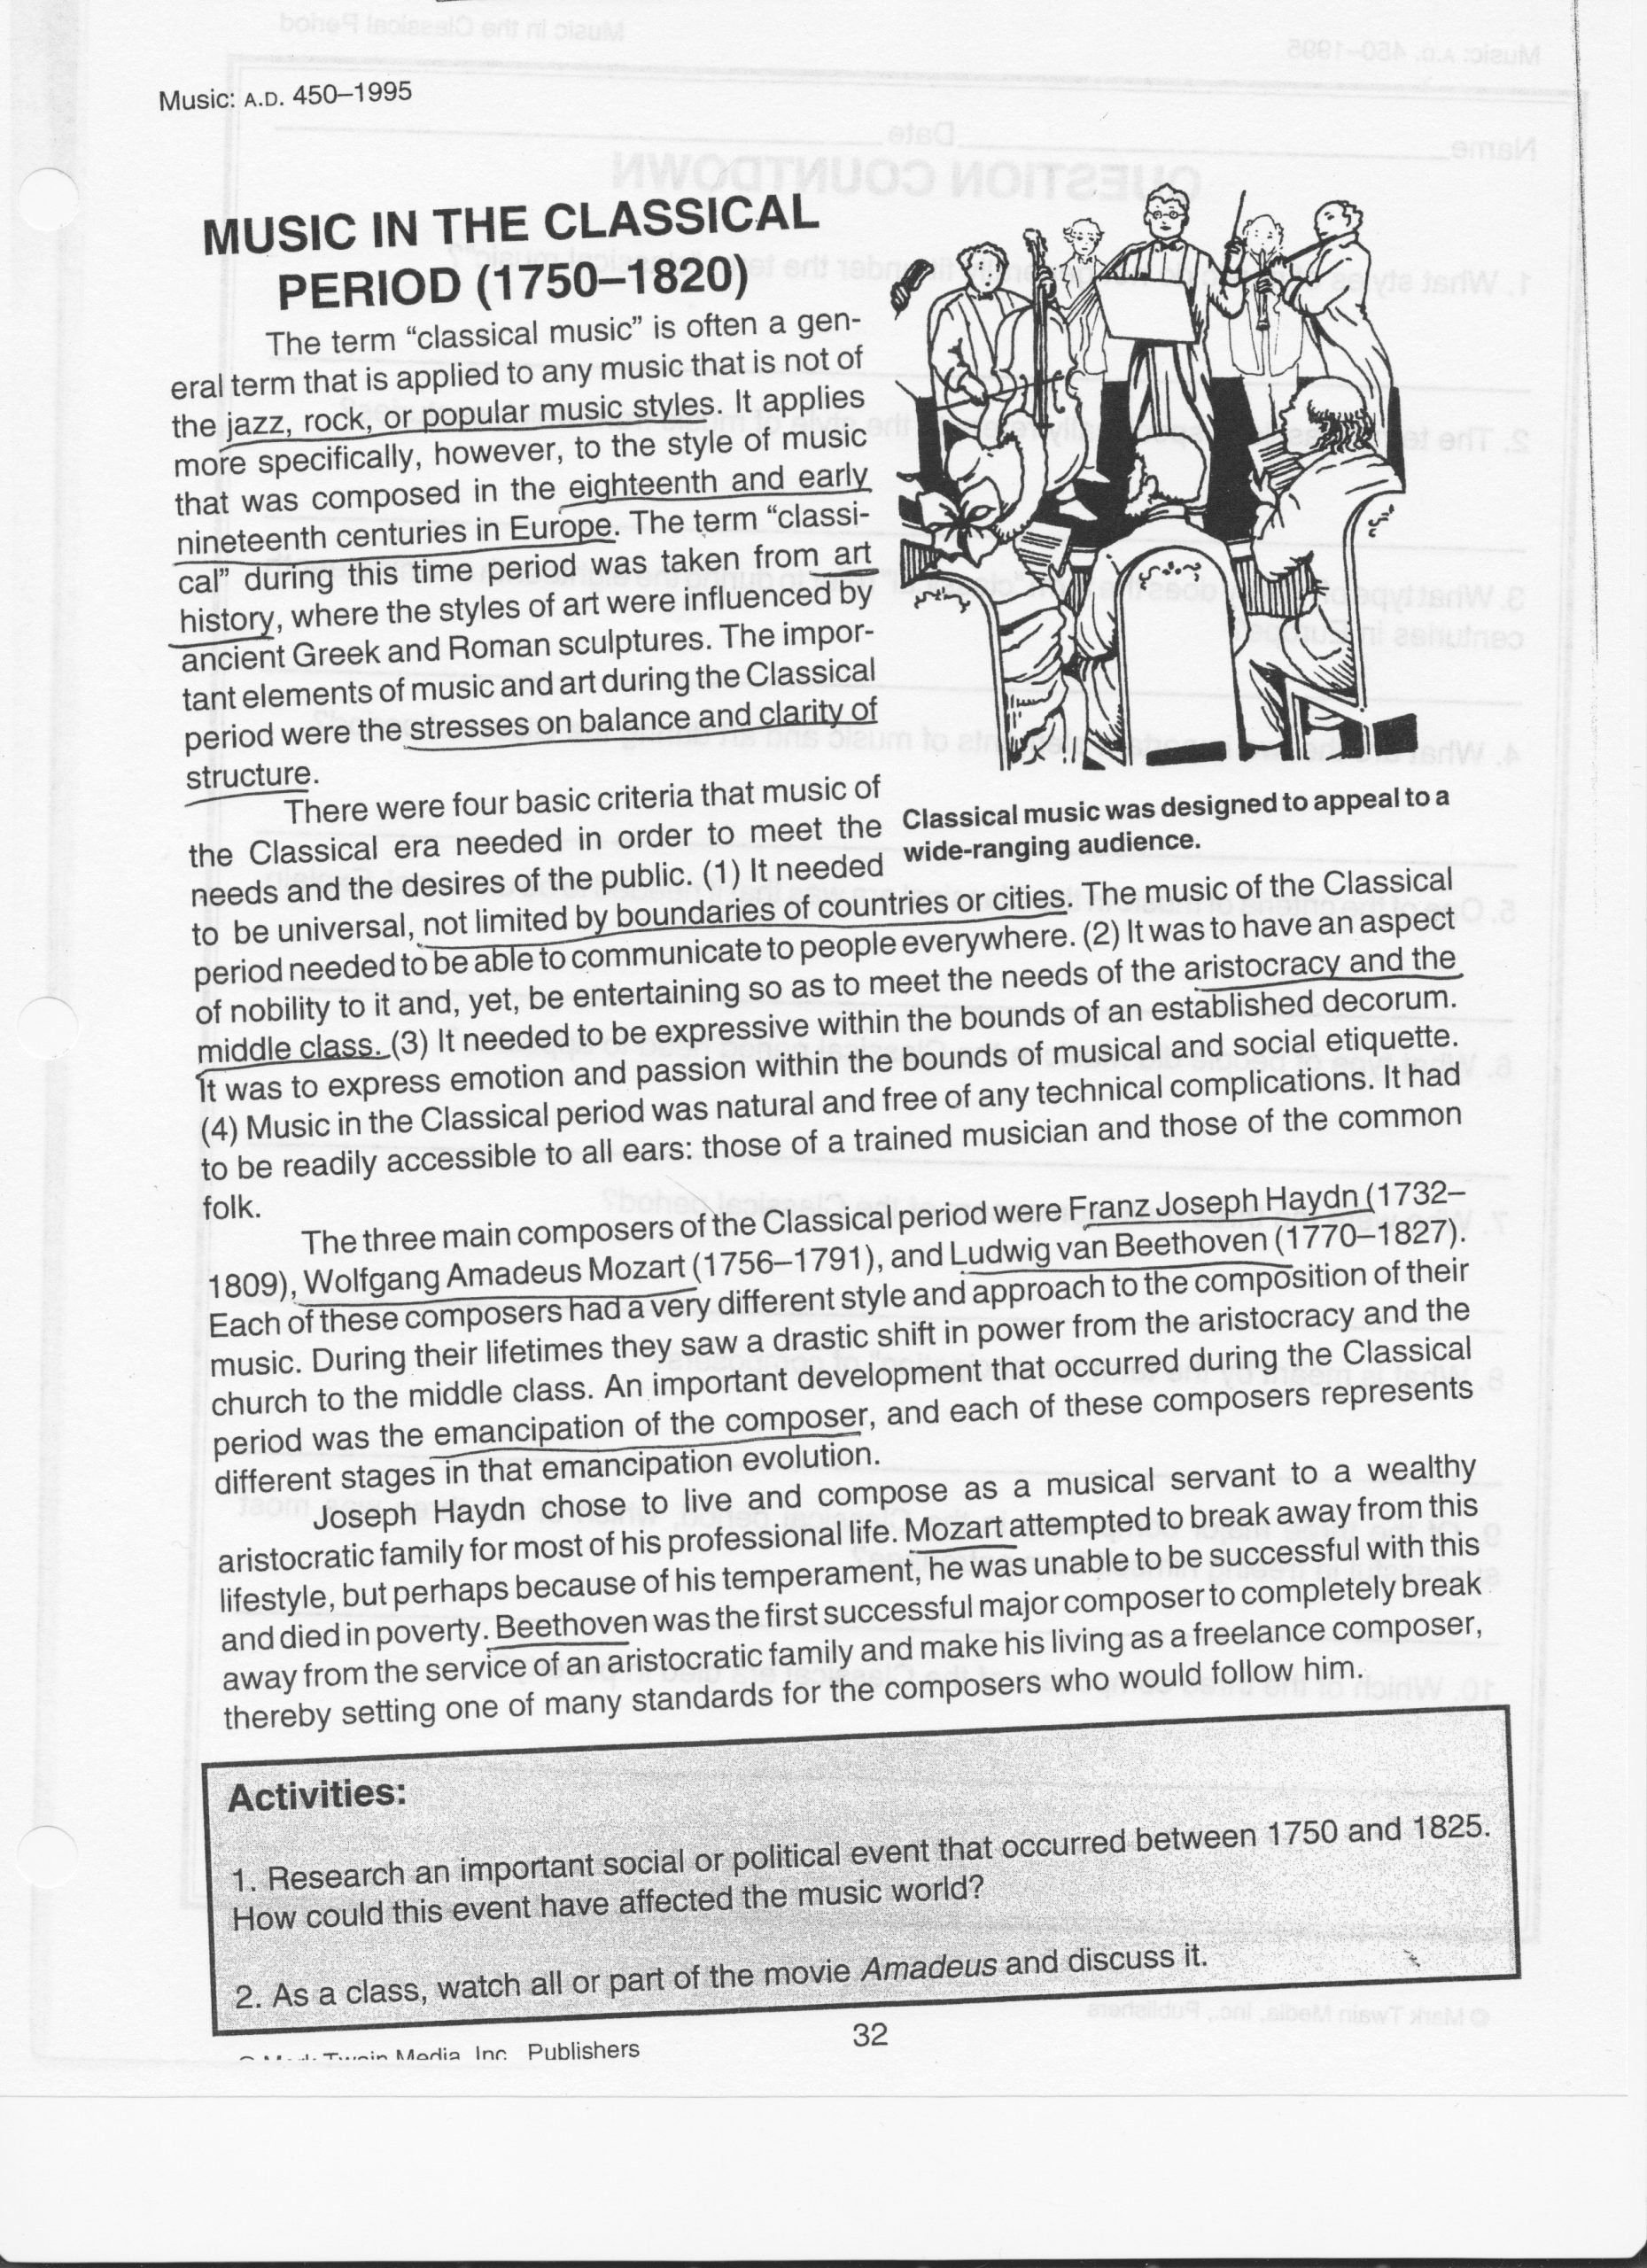 Renaissance Worksheets for Middle School Inspirational Renaissance Worksheets for Middle School Music Worksheets In